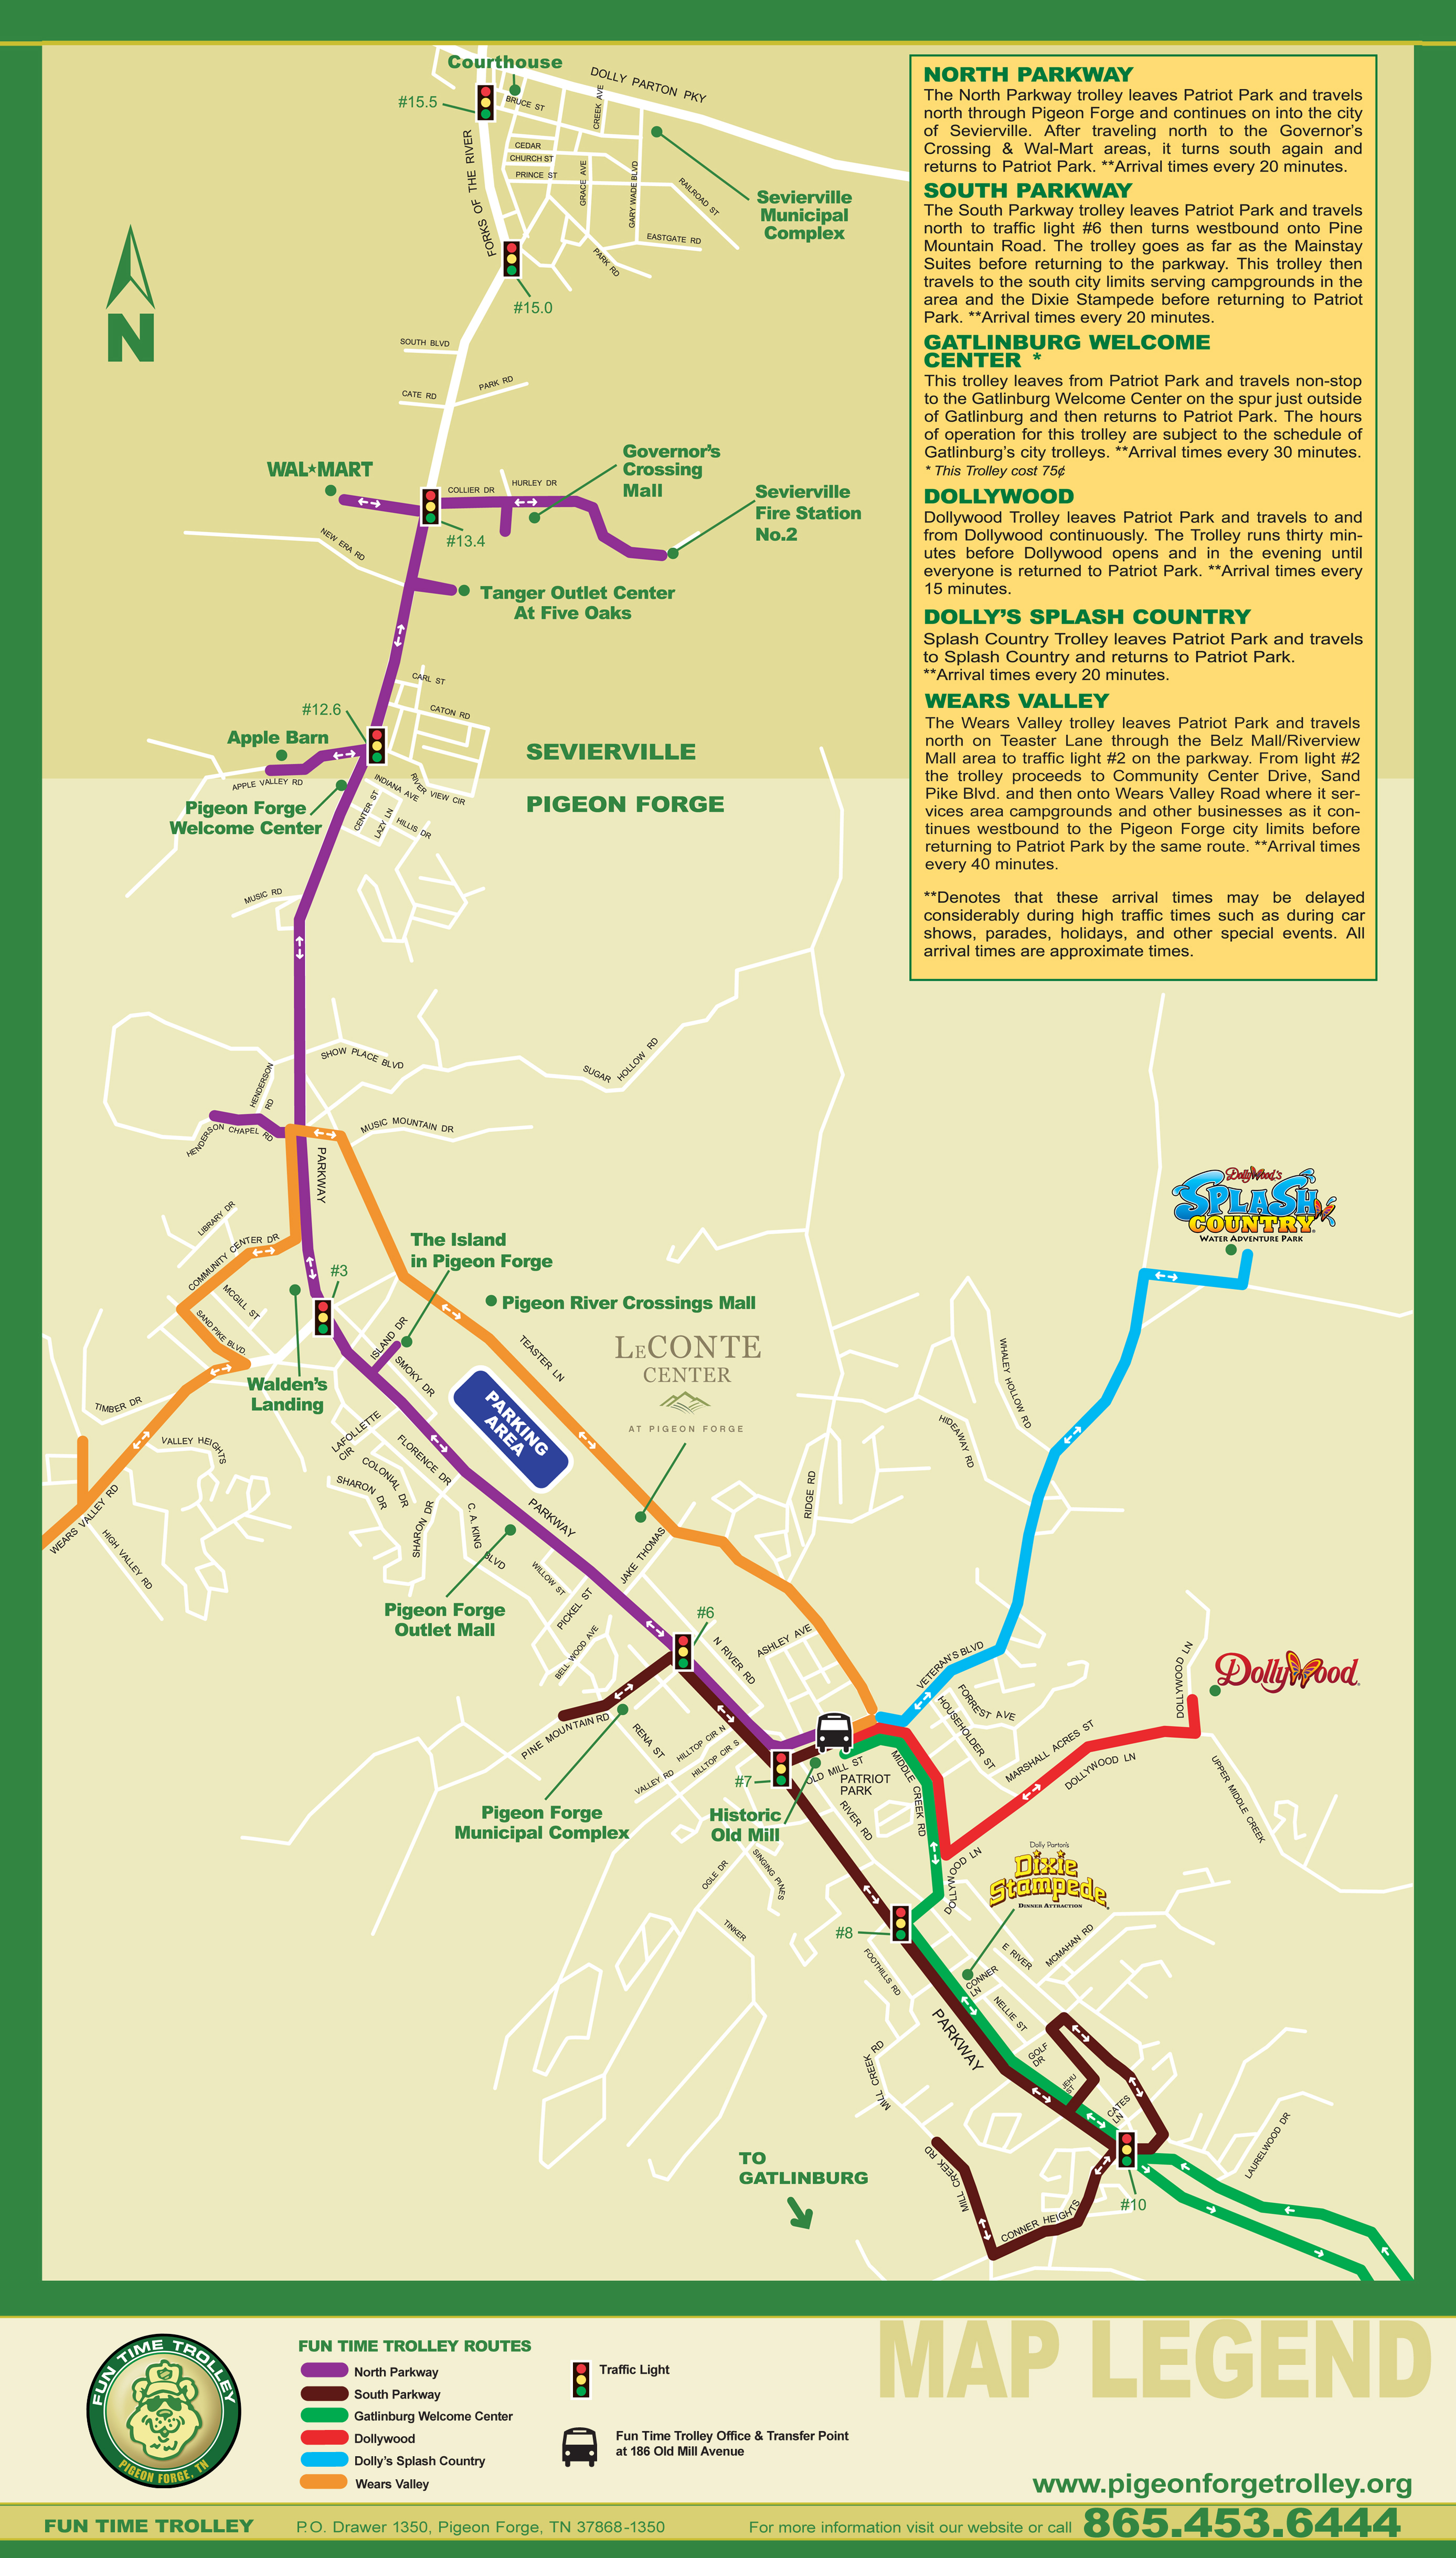 Tanger Outlet Pigeon Forge Map : tanger, outlet, pigeon, forge, Tanger, Outlets, Pigeon, Forge, Maping, Resources